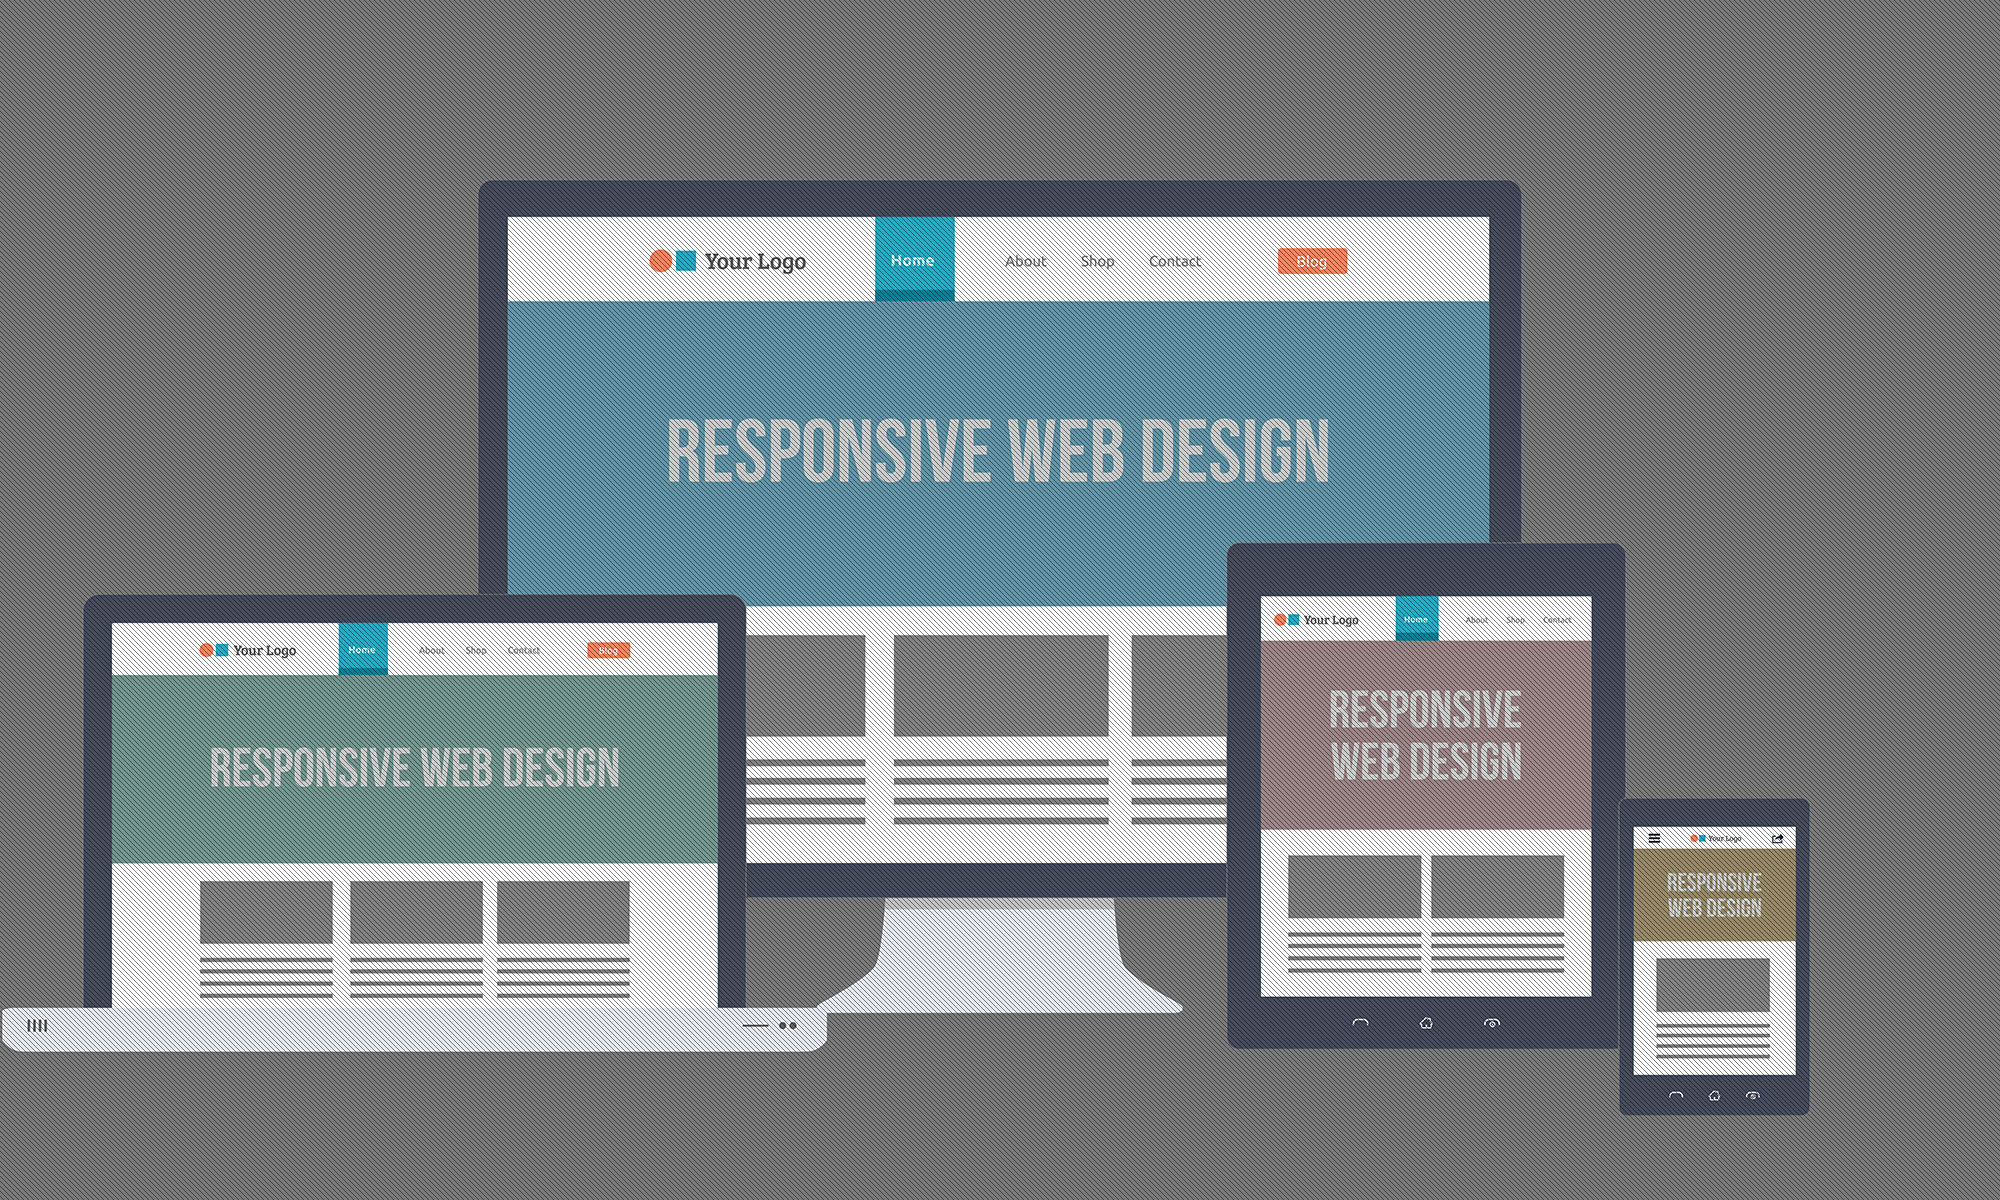 responsive-web-design-grid